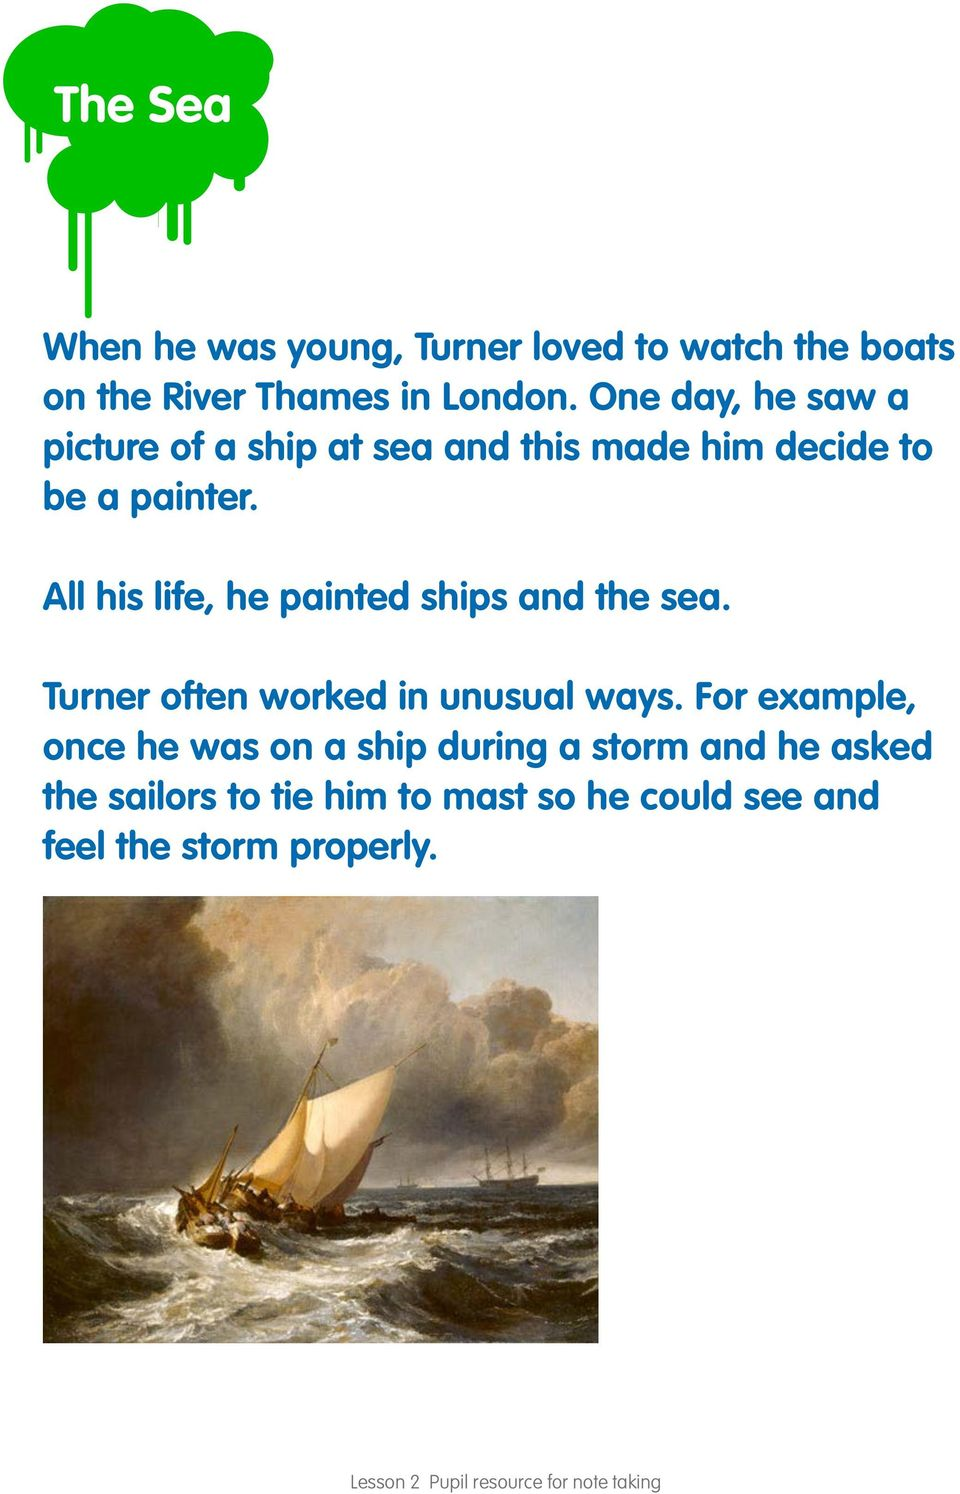 All his life, he painted ships and the sea. Turner often worked in unusual ways.